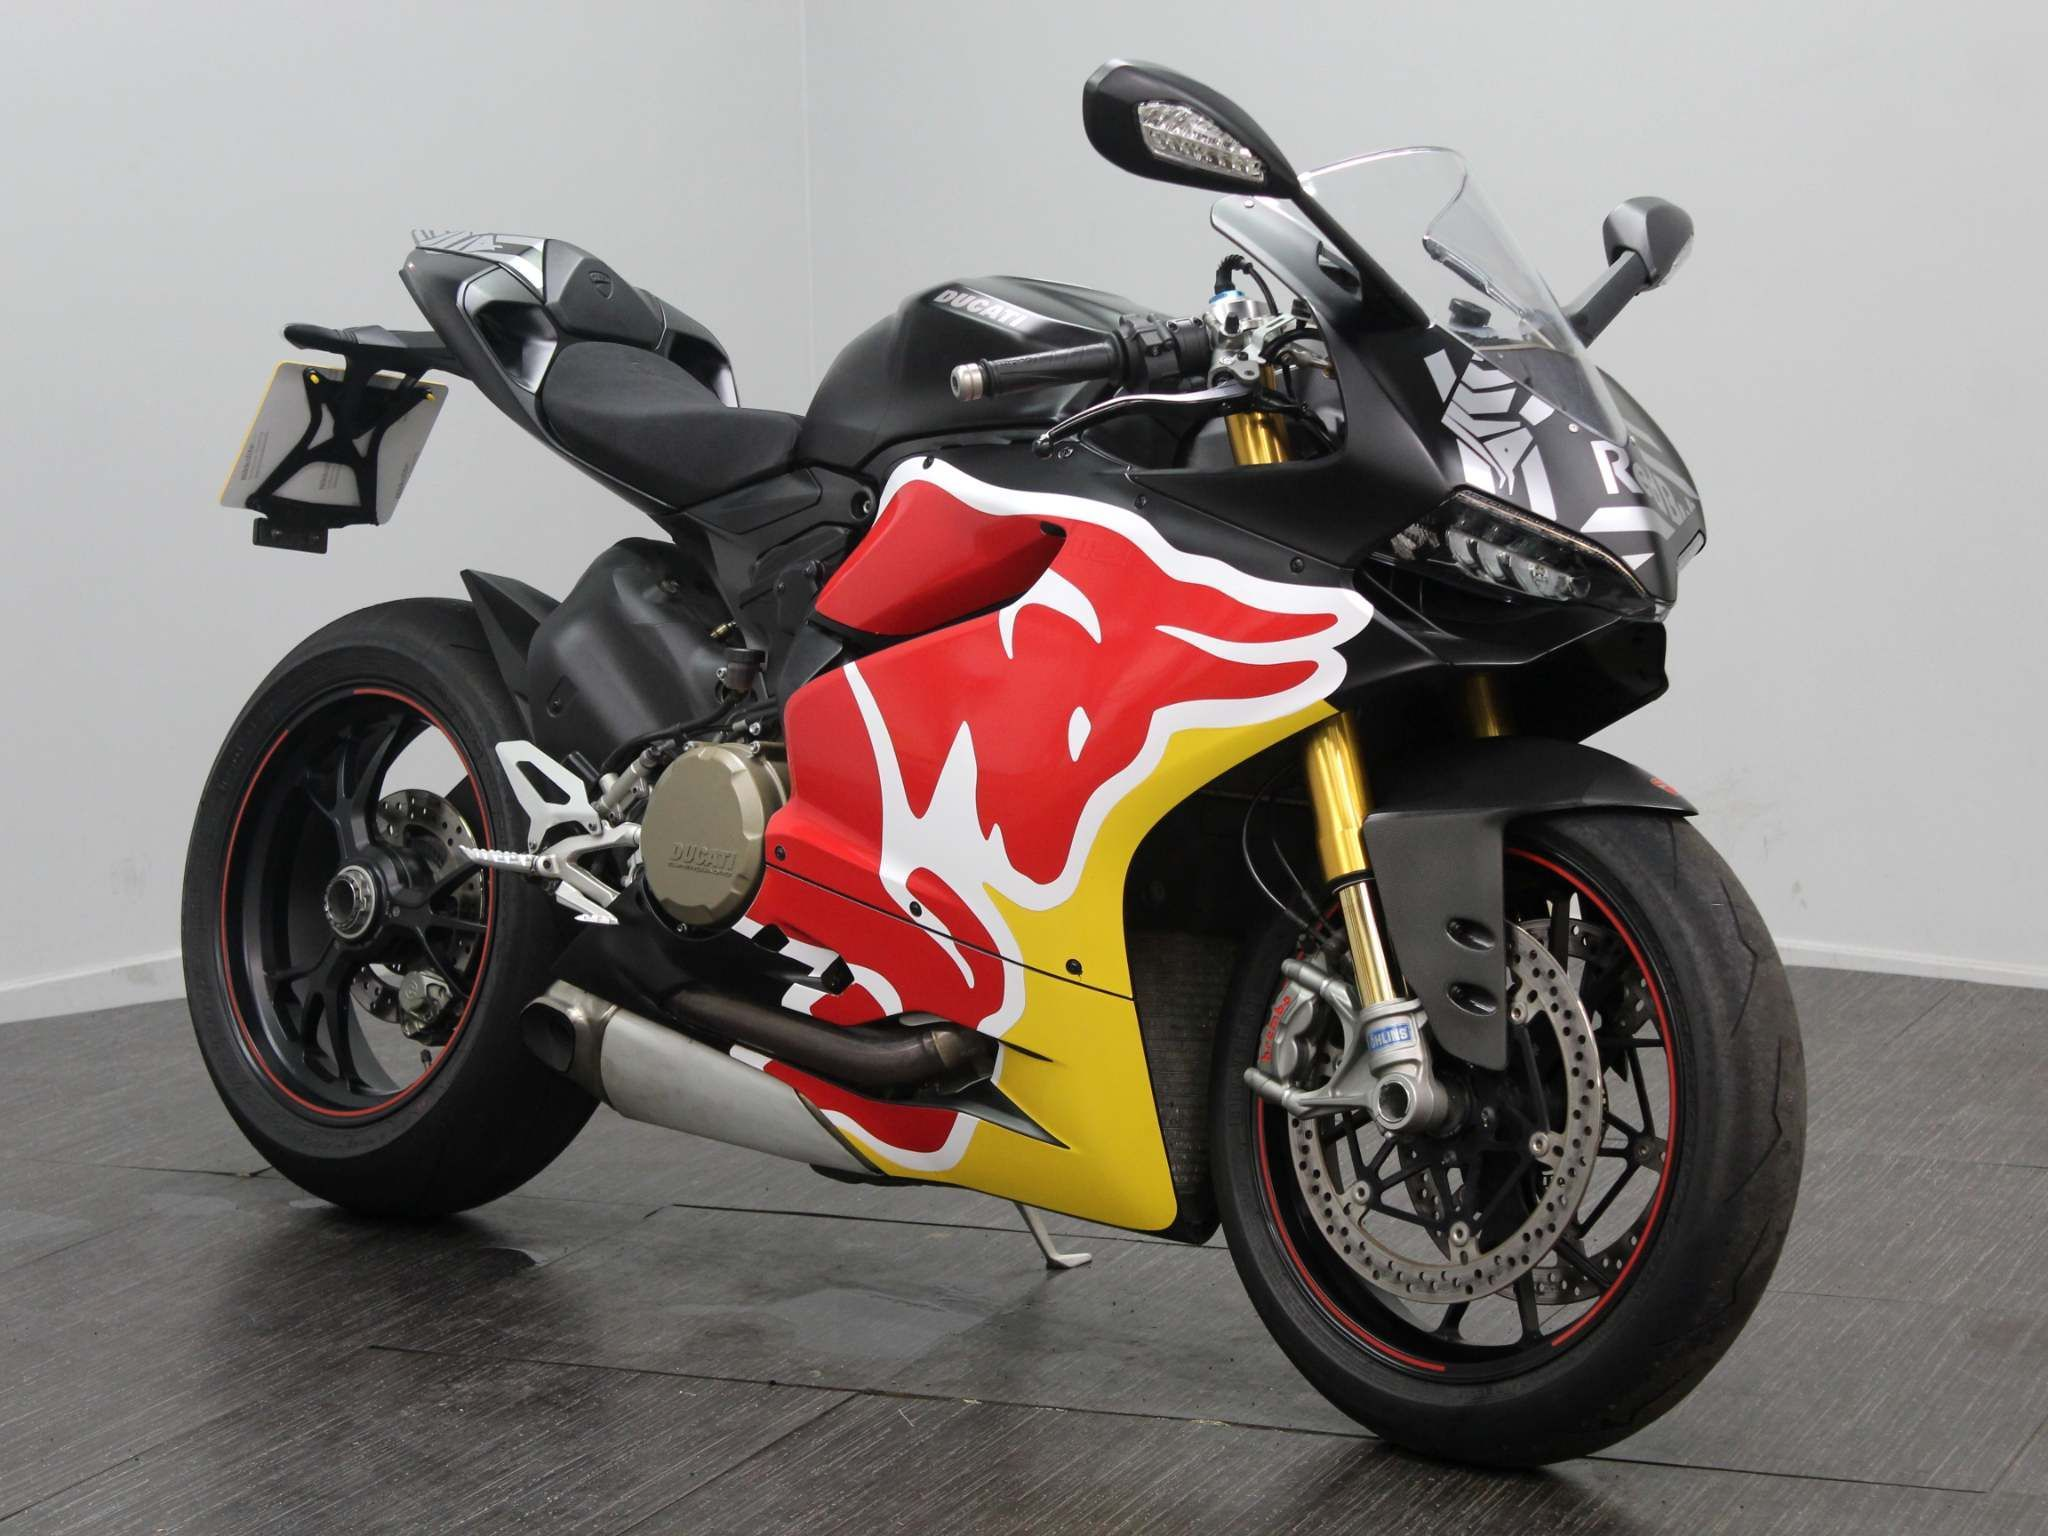 Ducati 1199 Panigale Images